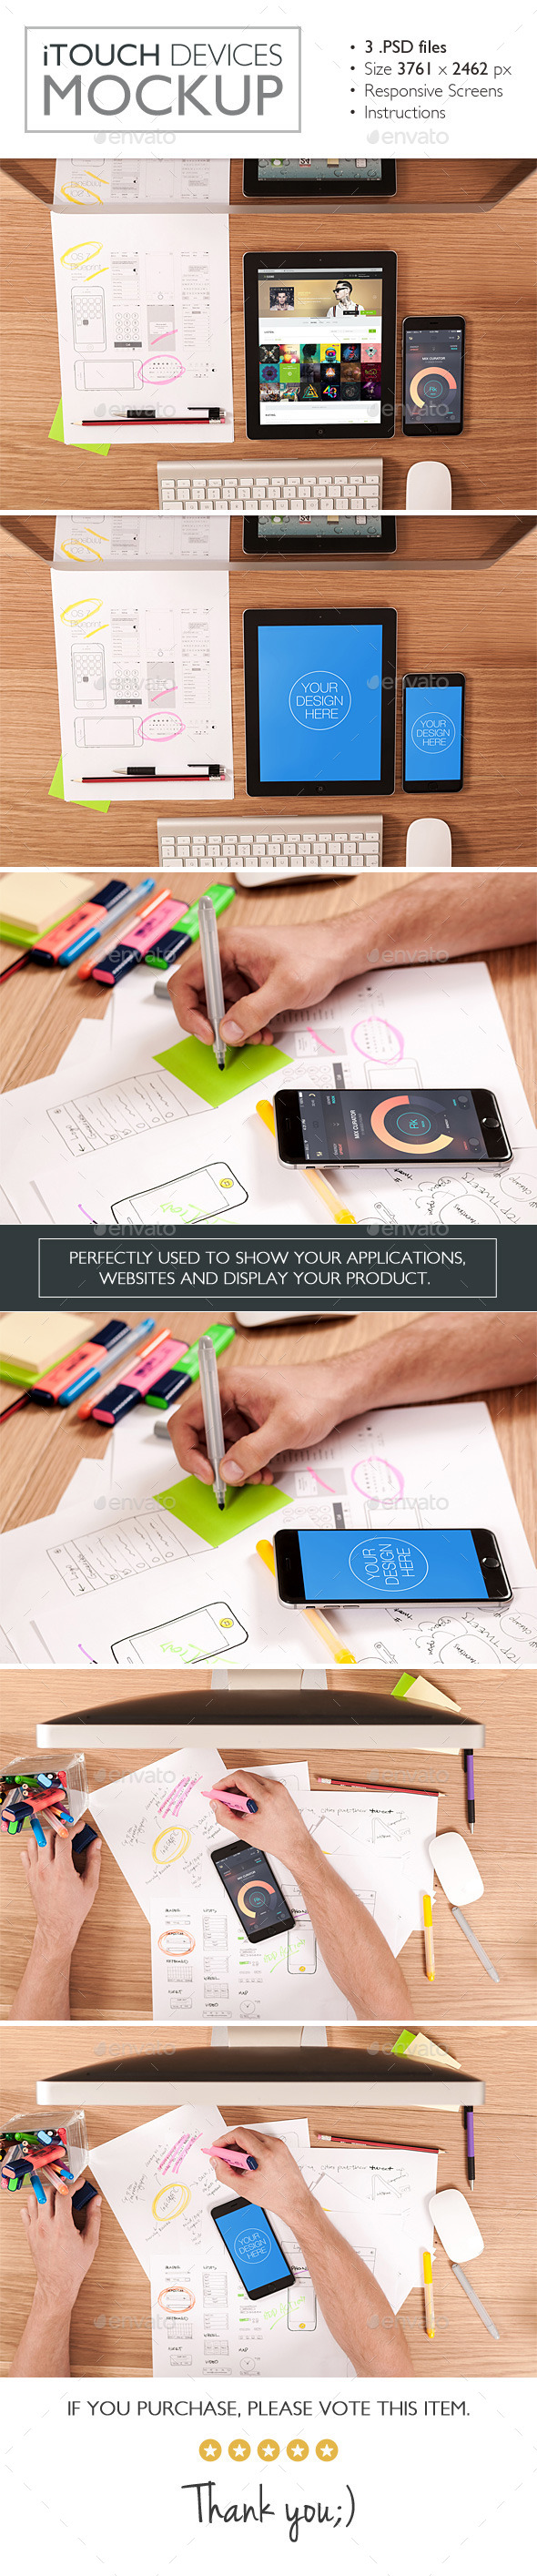 GraphicRiver iTouch Devices Mockup 11786874